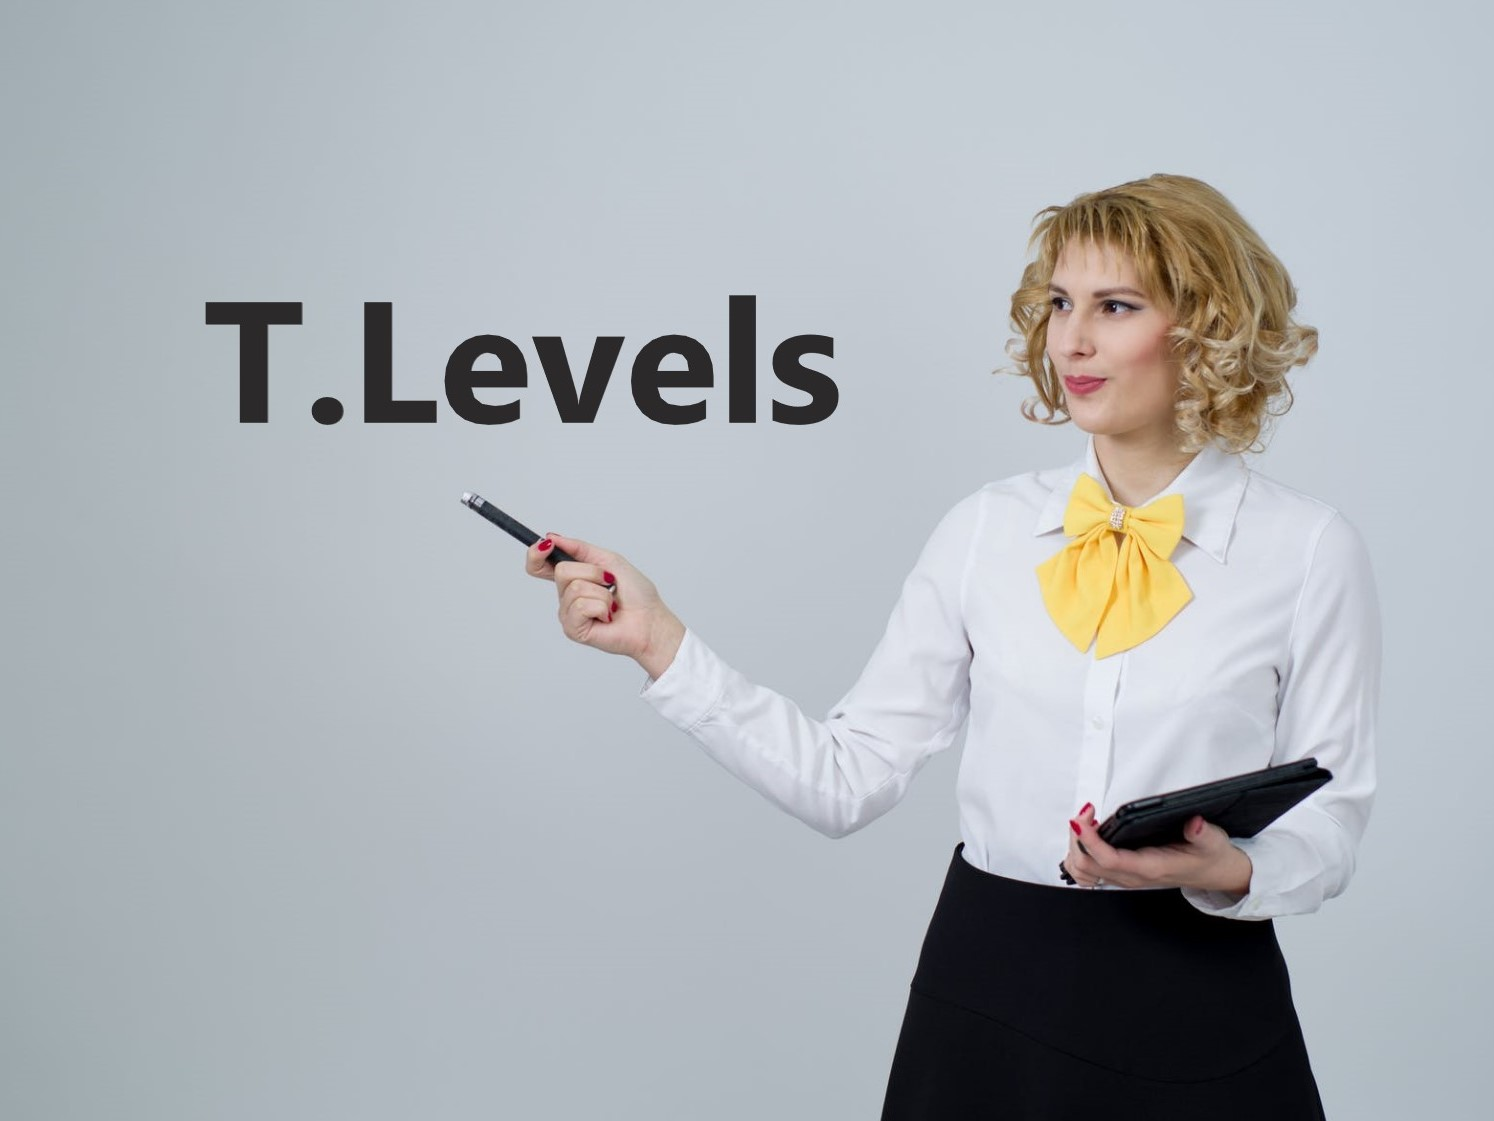 T.Levels. The run down